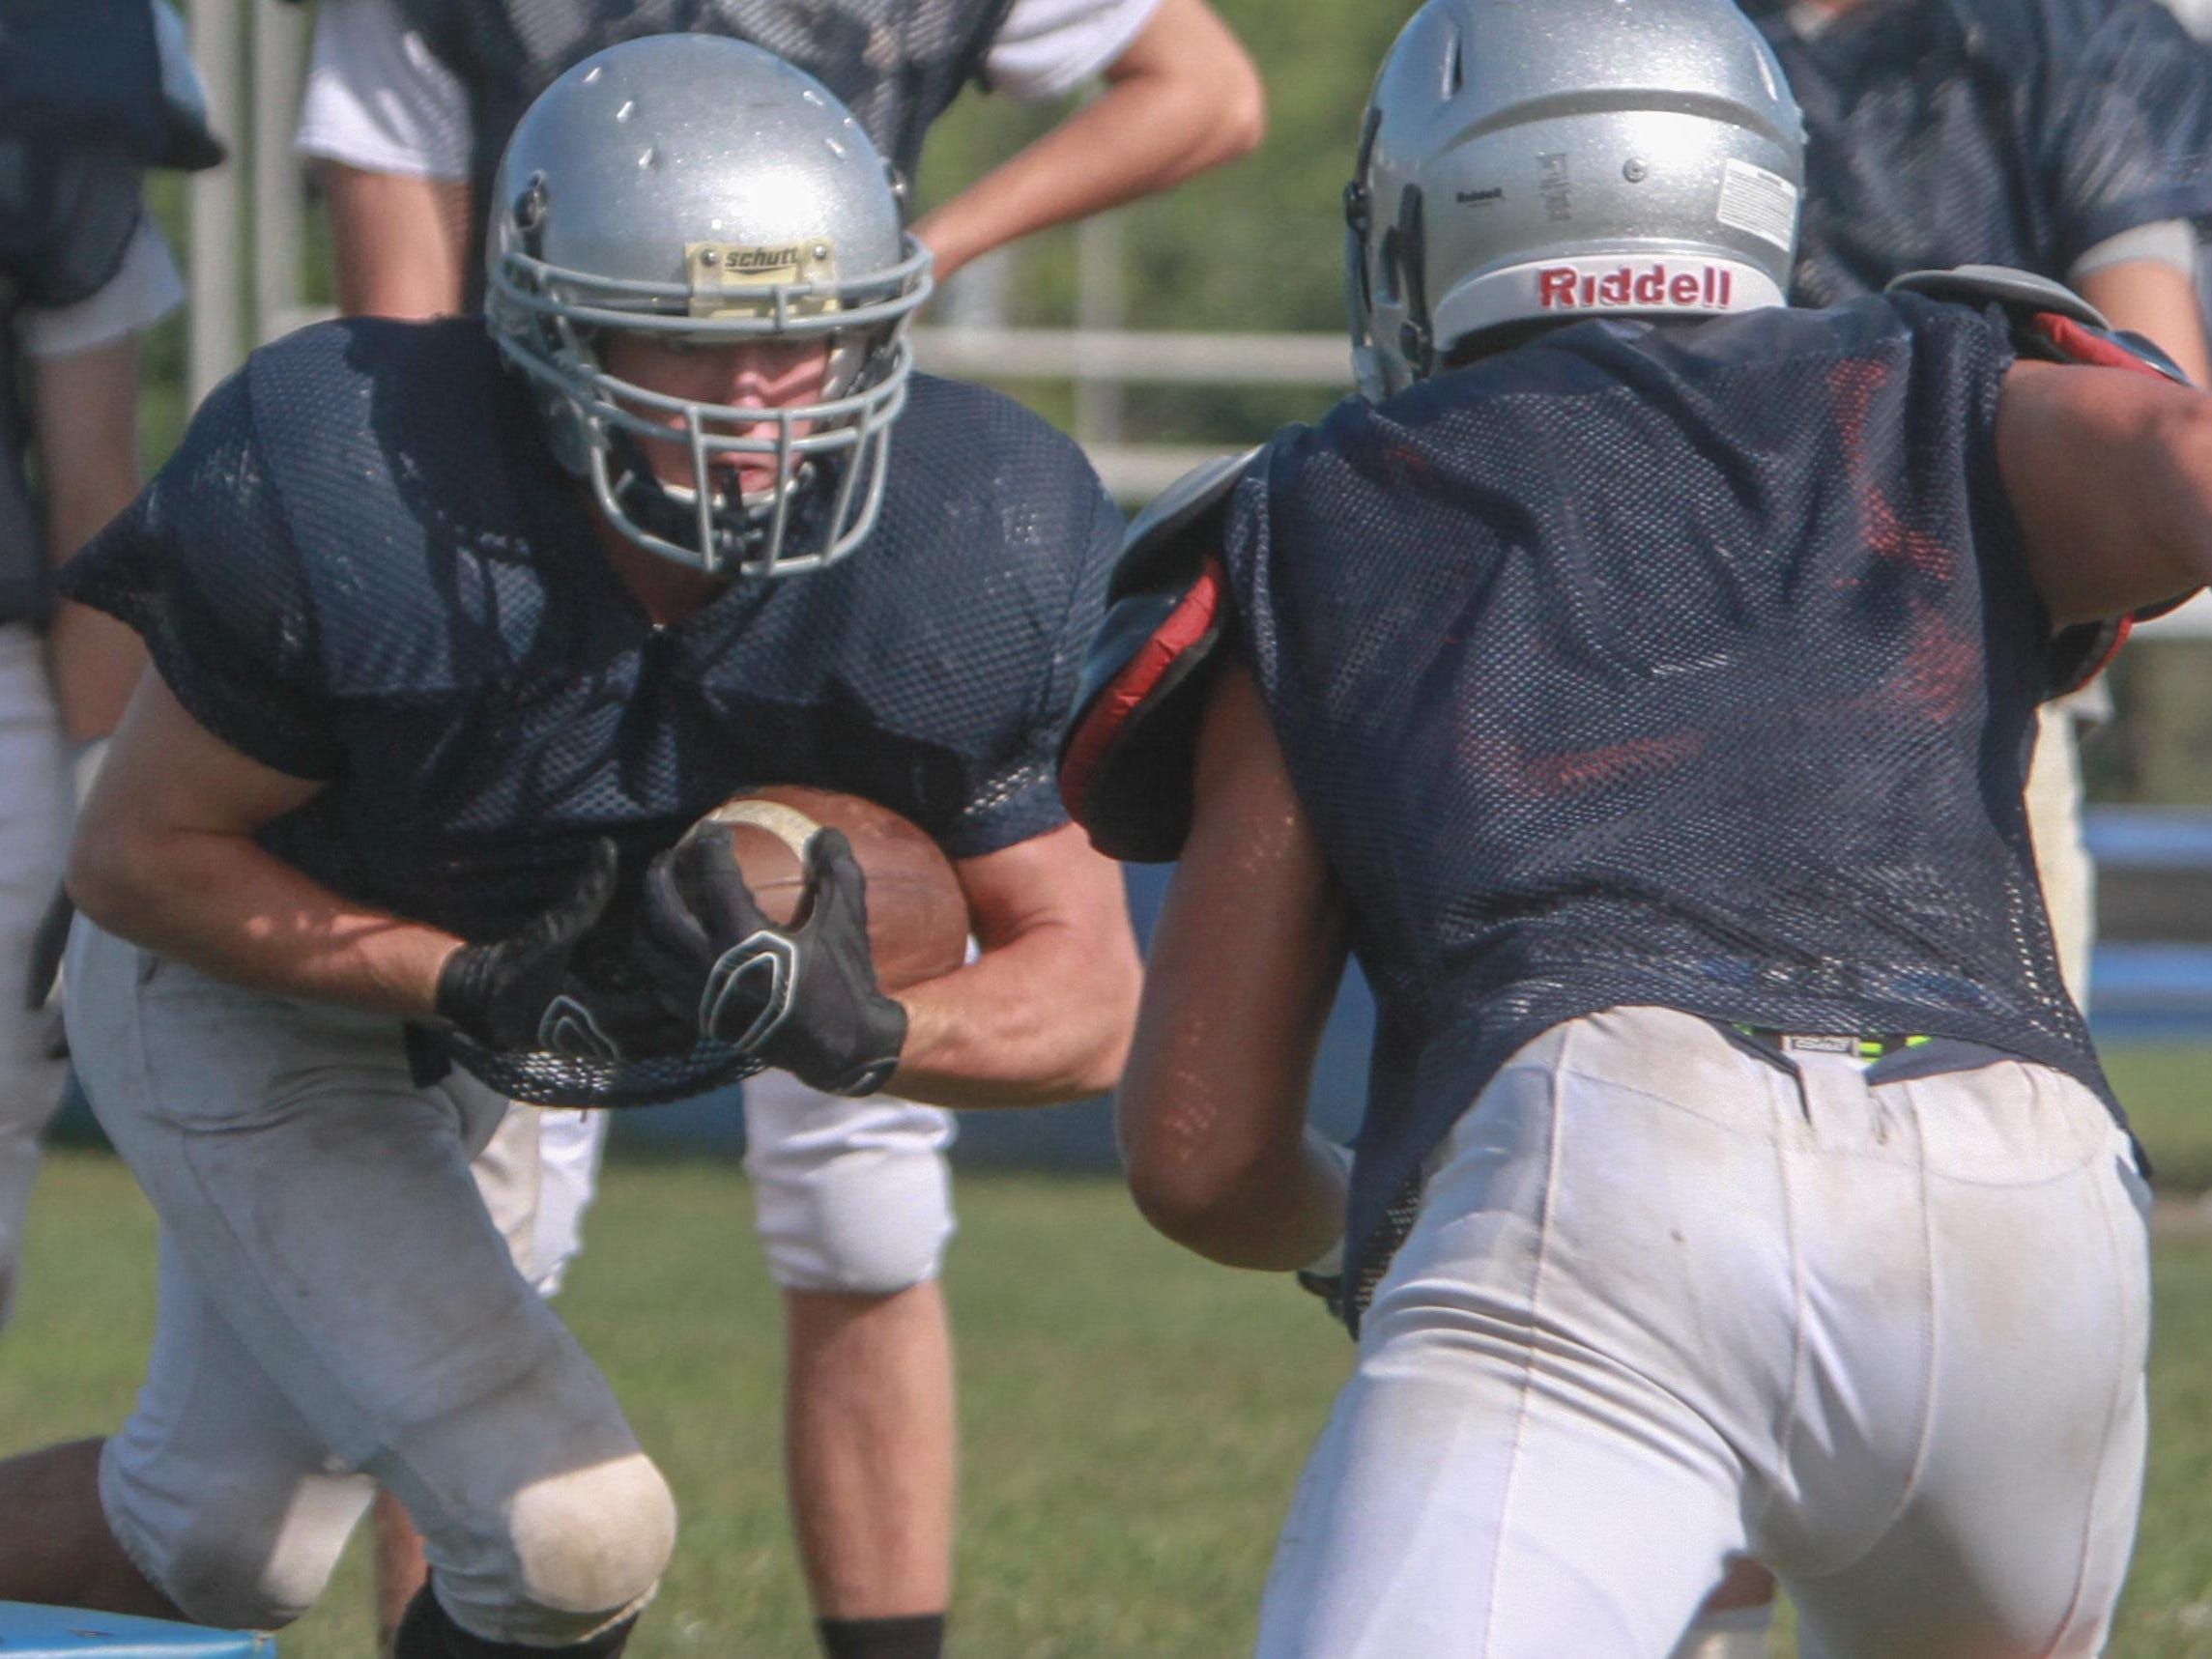 Paul Krueger takes the handoff for Manasquan during practice this summer.